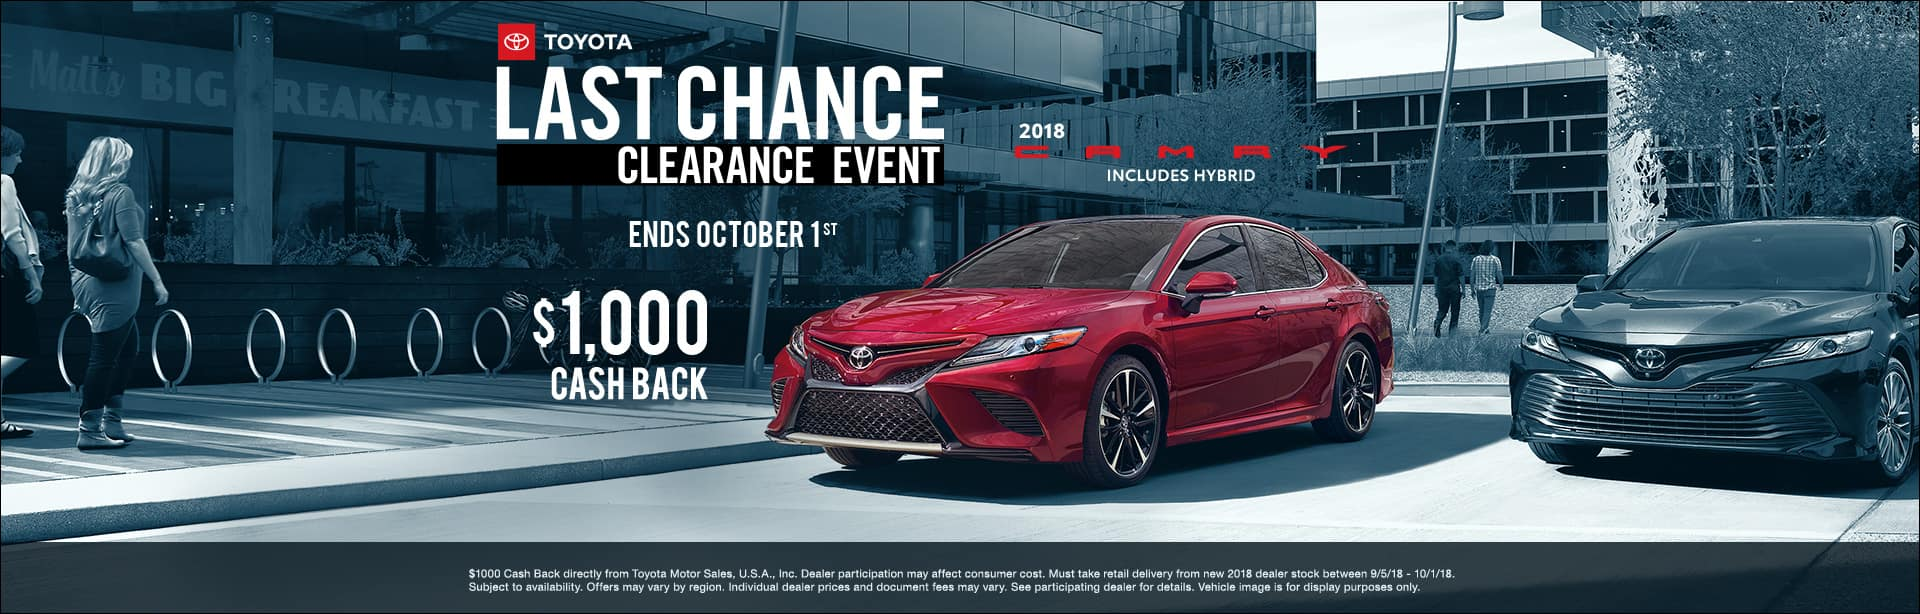 Toyota Camry Clearance Event Cain Toyota North Canton Ohio